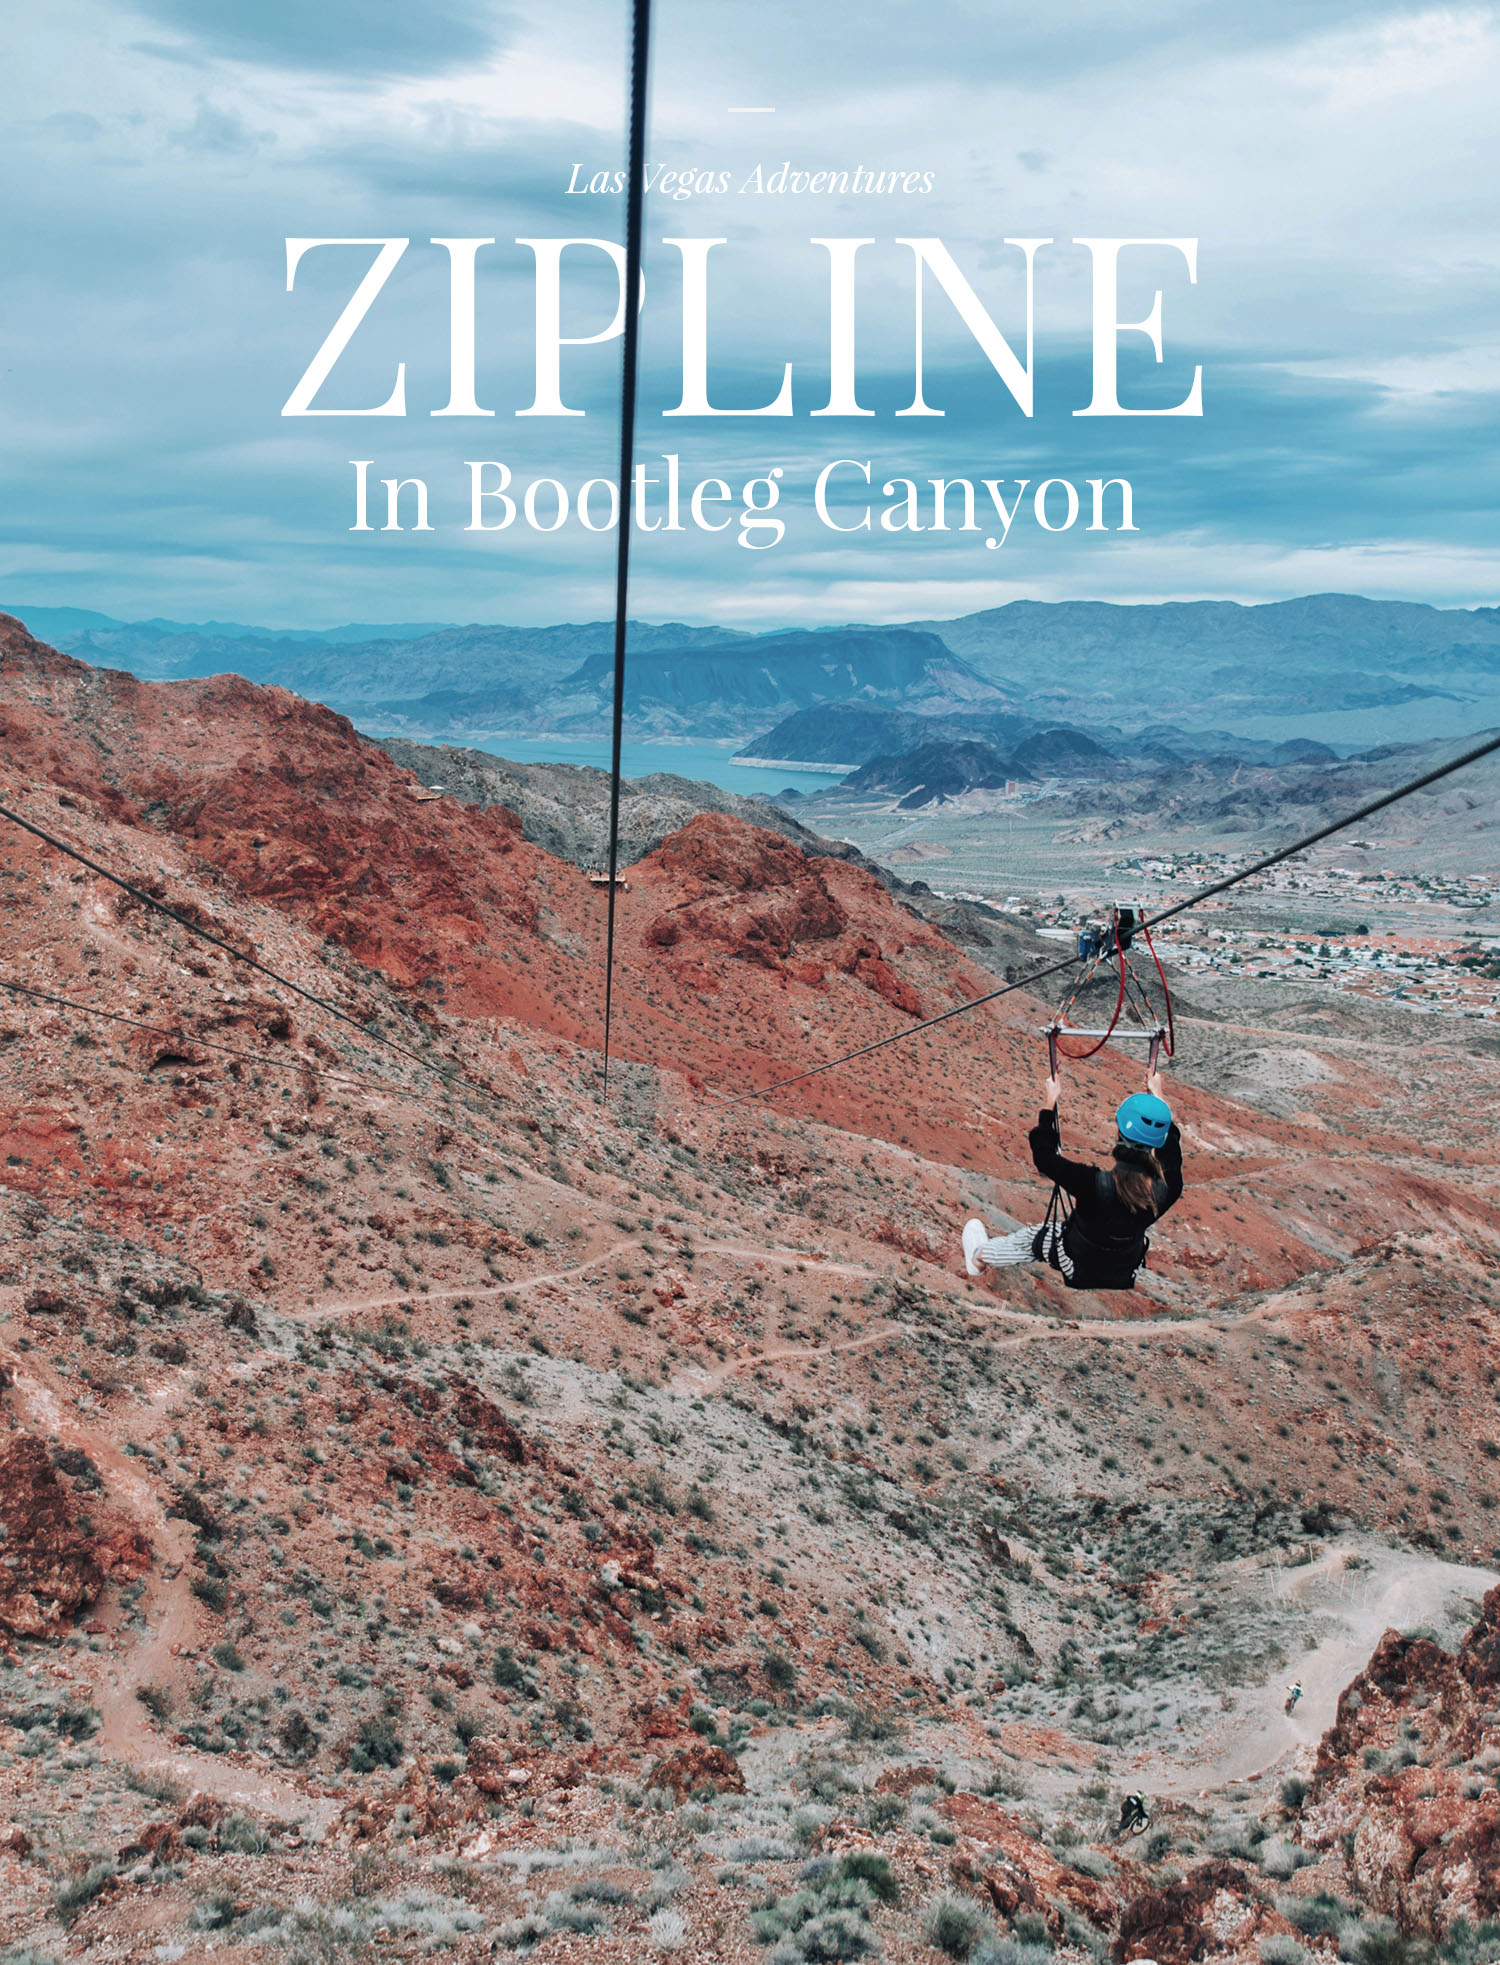 Ziplines Las Vegas Nevada – Flightlinez Bootleg Canyon